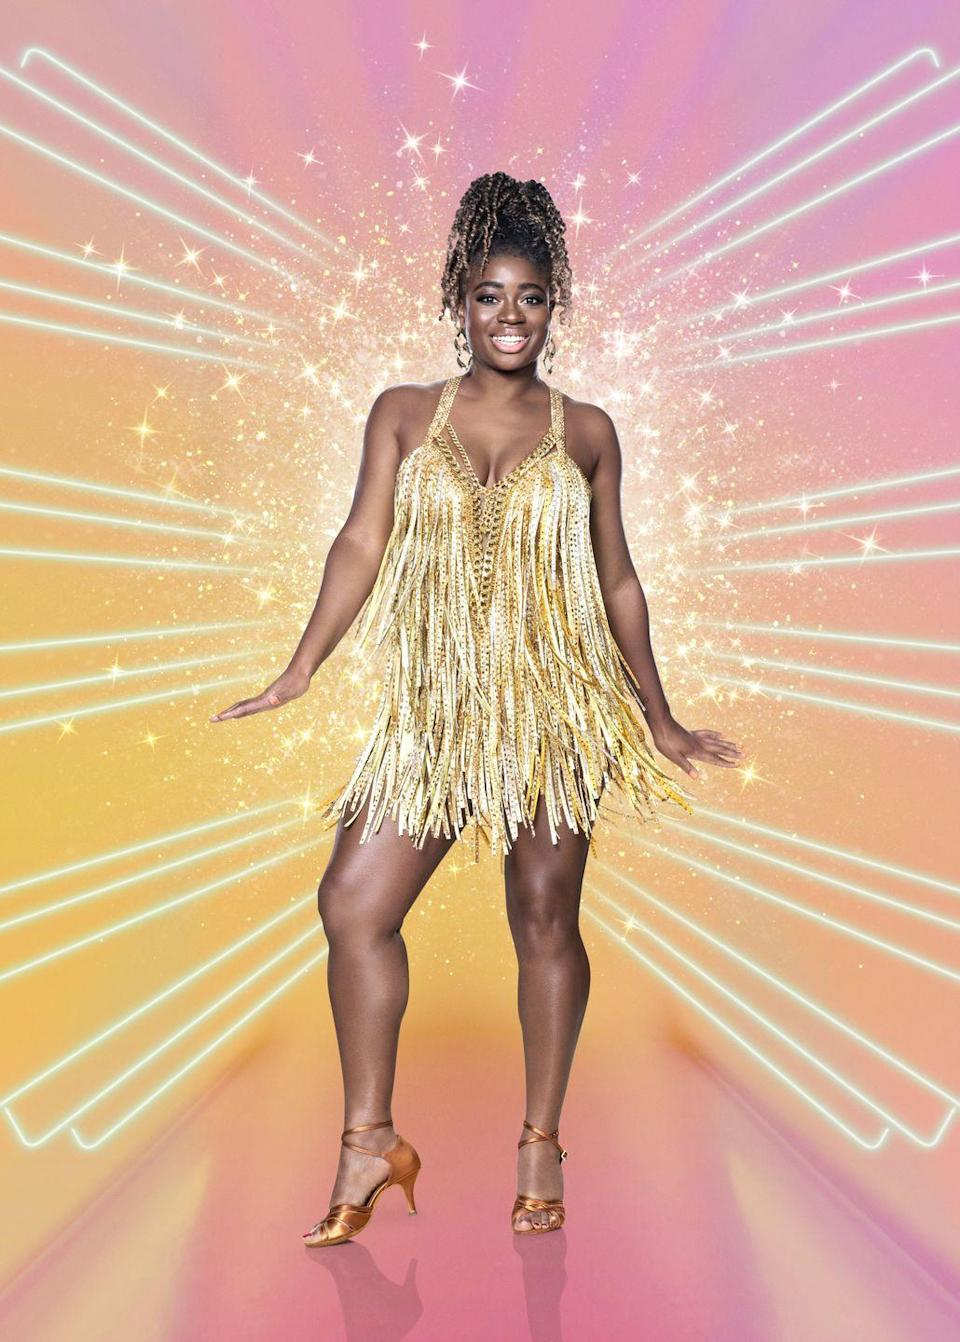 """<p><strong>Who is she? </strong>BBC Radio 1 DJ and September <a href=""""https://www.cosmopolitan.com/uk/entertainment/a33791836/clara-amfo-cosmopolitan-uk-october-cover/"""" rel=""""nofollow noopener"""" target=""""_blank"""" data-ylk=""""slk:Cosmopolitan UK cover star"""" class=""""link rapid-noclick-resp"""">Cosmopolitan UK cover star</a> Clara Amfo, 36. Announcing the news on Twitter, Strictly wrote, """"Hey DJ! We can't wait for @BBCR1's @claraamfo to hit the dance floor. She's spinning straight into #Strictly 2020.""""</p><p><strong>What's she said about Strictly? </strong>""""Look, Strictly is an amazing show,"""" she said of rumours in her Cosmopolitan cover interview. """"It's so sweet-spirited; nobody ever watches it with a bad intention and that's what I've always loved about it..."""" she said with a coy smile. Exciting!</p><p><a class=""""link rapid-noclick-resp"""" href=""""https://www.cosmopolitan.com/uk/entertainment/a33791836/clara-amfo-cosmopolitan-uk-october-cover/"""" rel=""""nofollow noopener"""" target=""""_blank"""" data-ylk=""""slk:READ CLARA'S COSMOPOLITAN UK INTERVIEW HERE"""">READ CLARA'S COSMOPOLITAN UK INTERVIEW HERE</a></p>"""